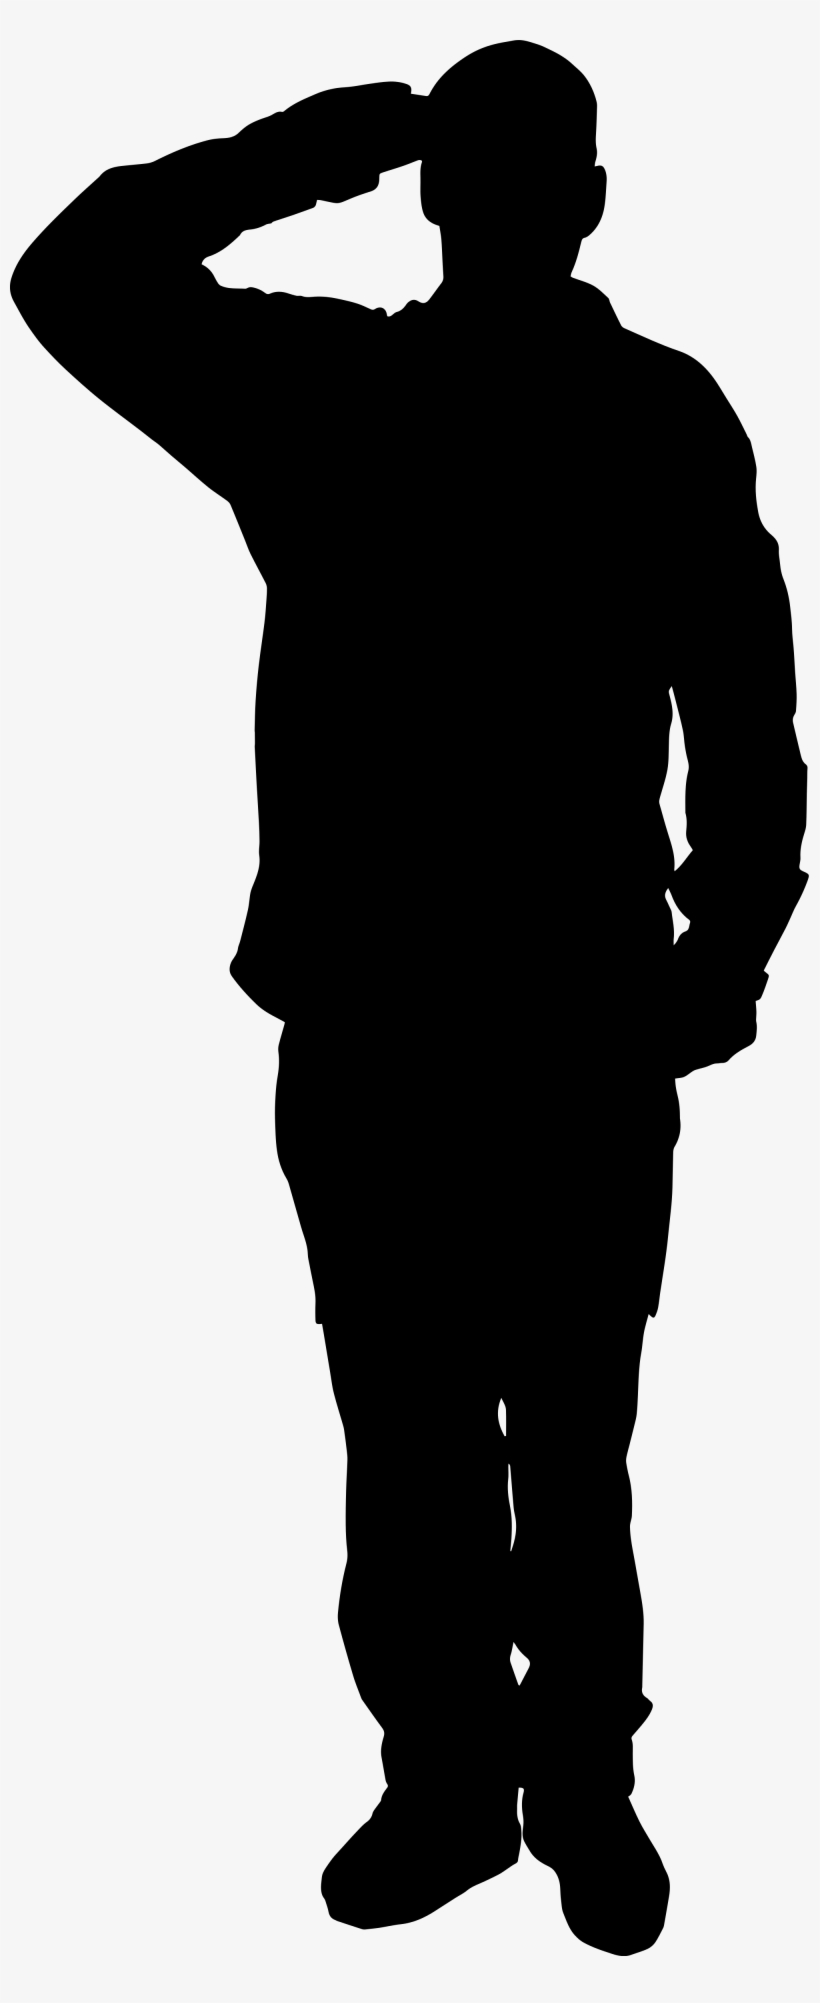 Army Clipart Ww1 Soldier - Soldier Silhouette, transparent png #2262212